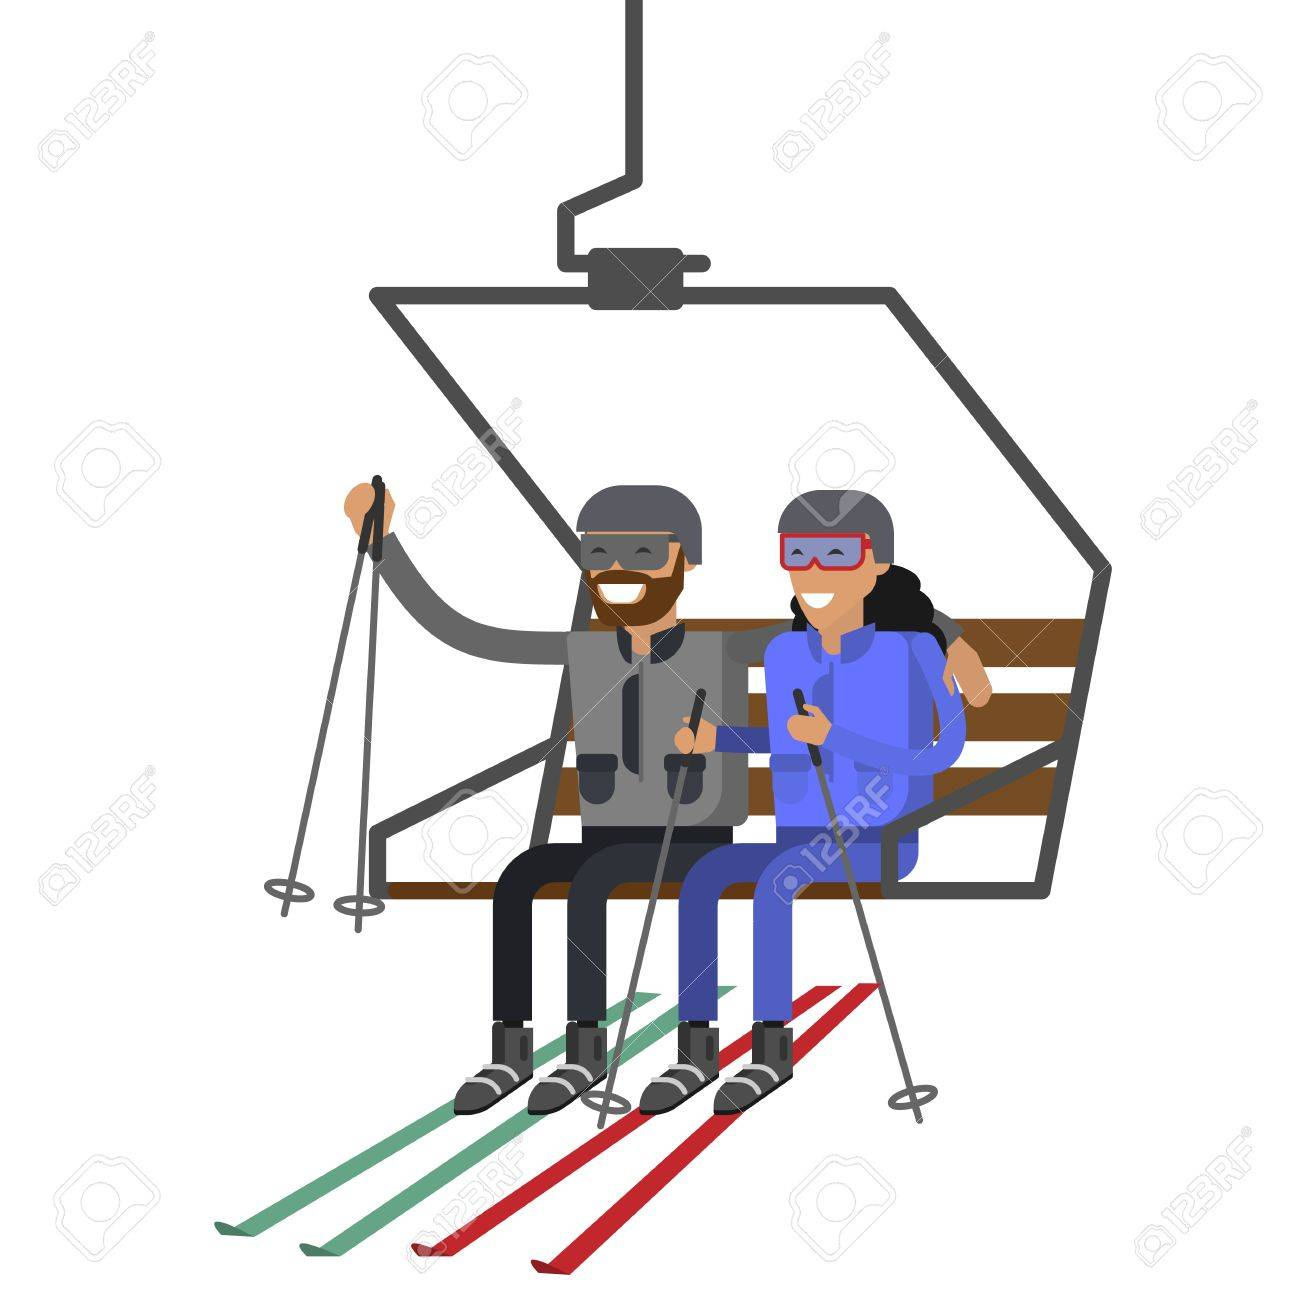 People Rise To The Ski Lift Elevator Royalty Free Cliparts Vectors And Stock Illustration Image 69152996